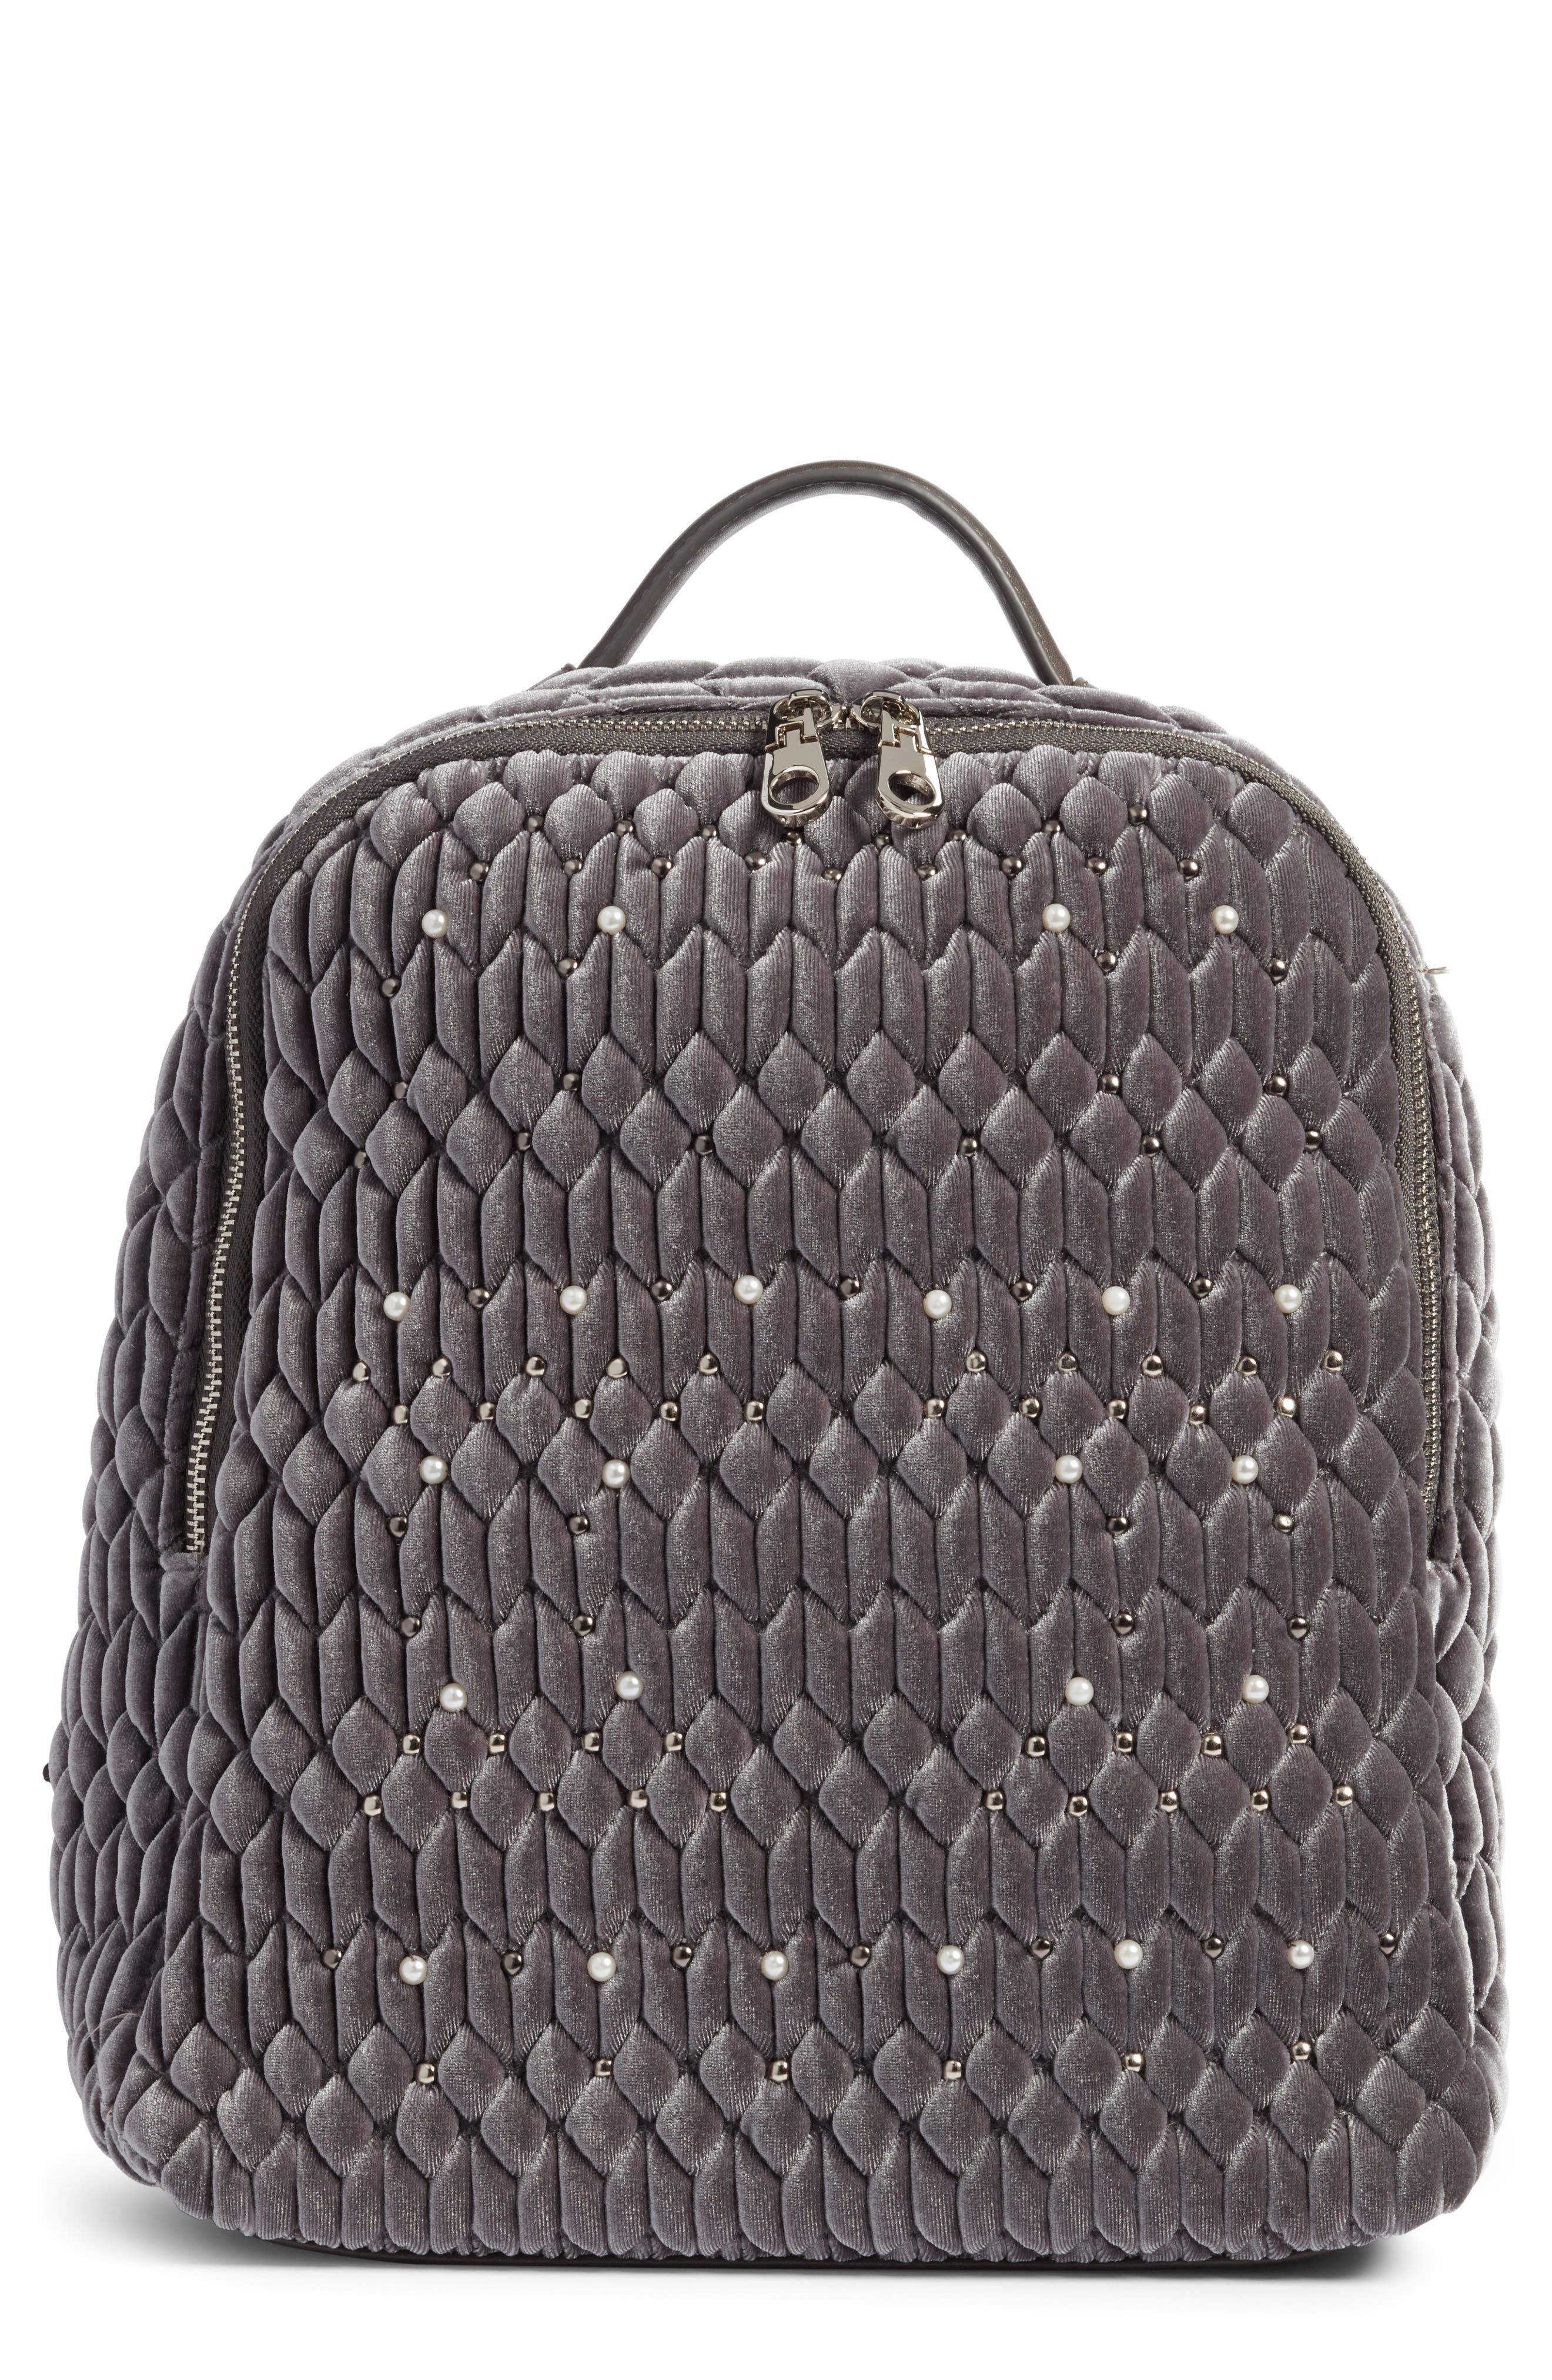 Chelsea28 Brooke Quilted Backpack